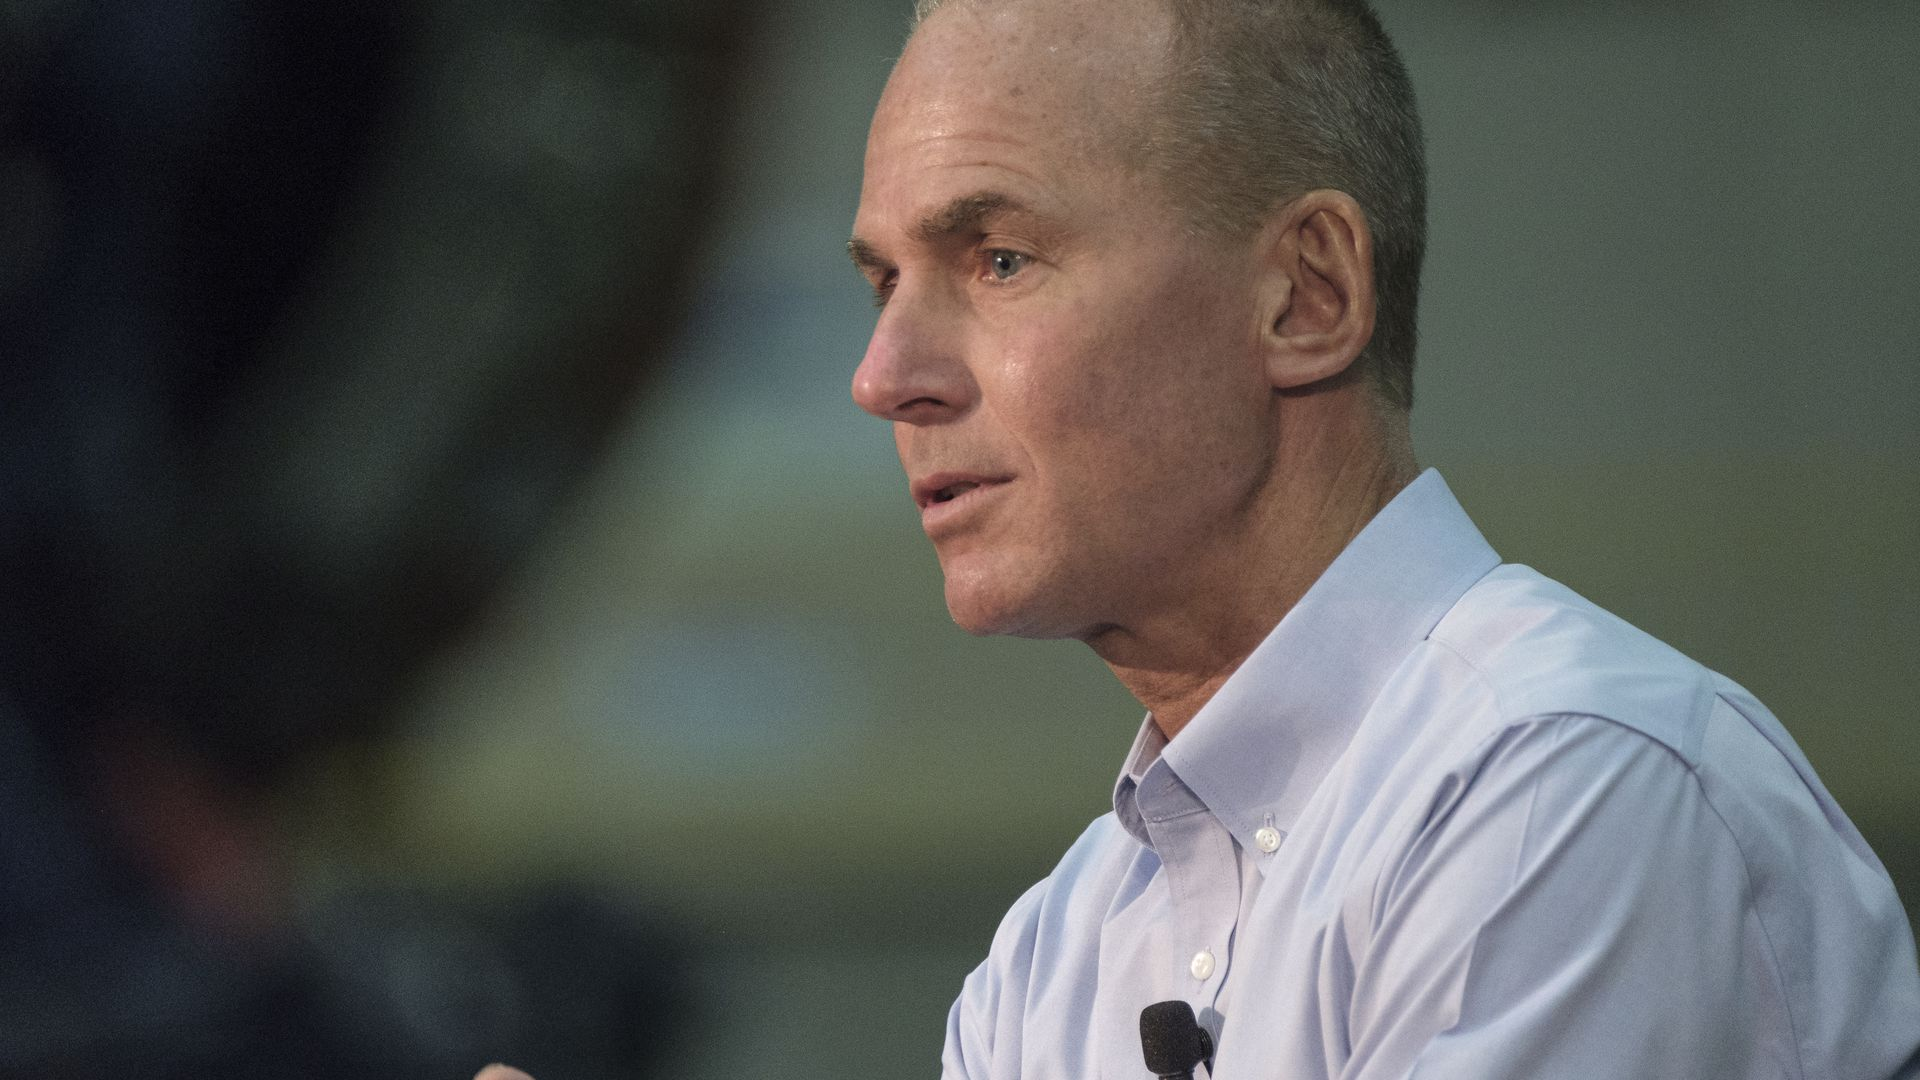 Boeing's CEO issues apology, acknowledges responsibility - Axios